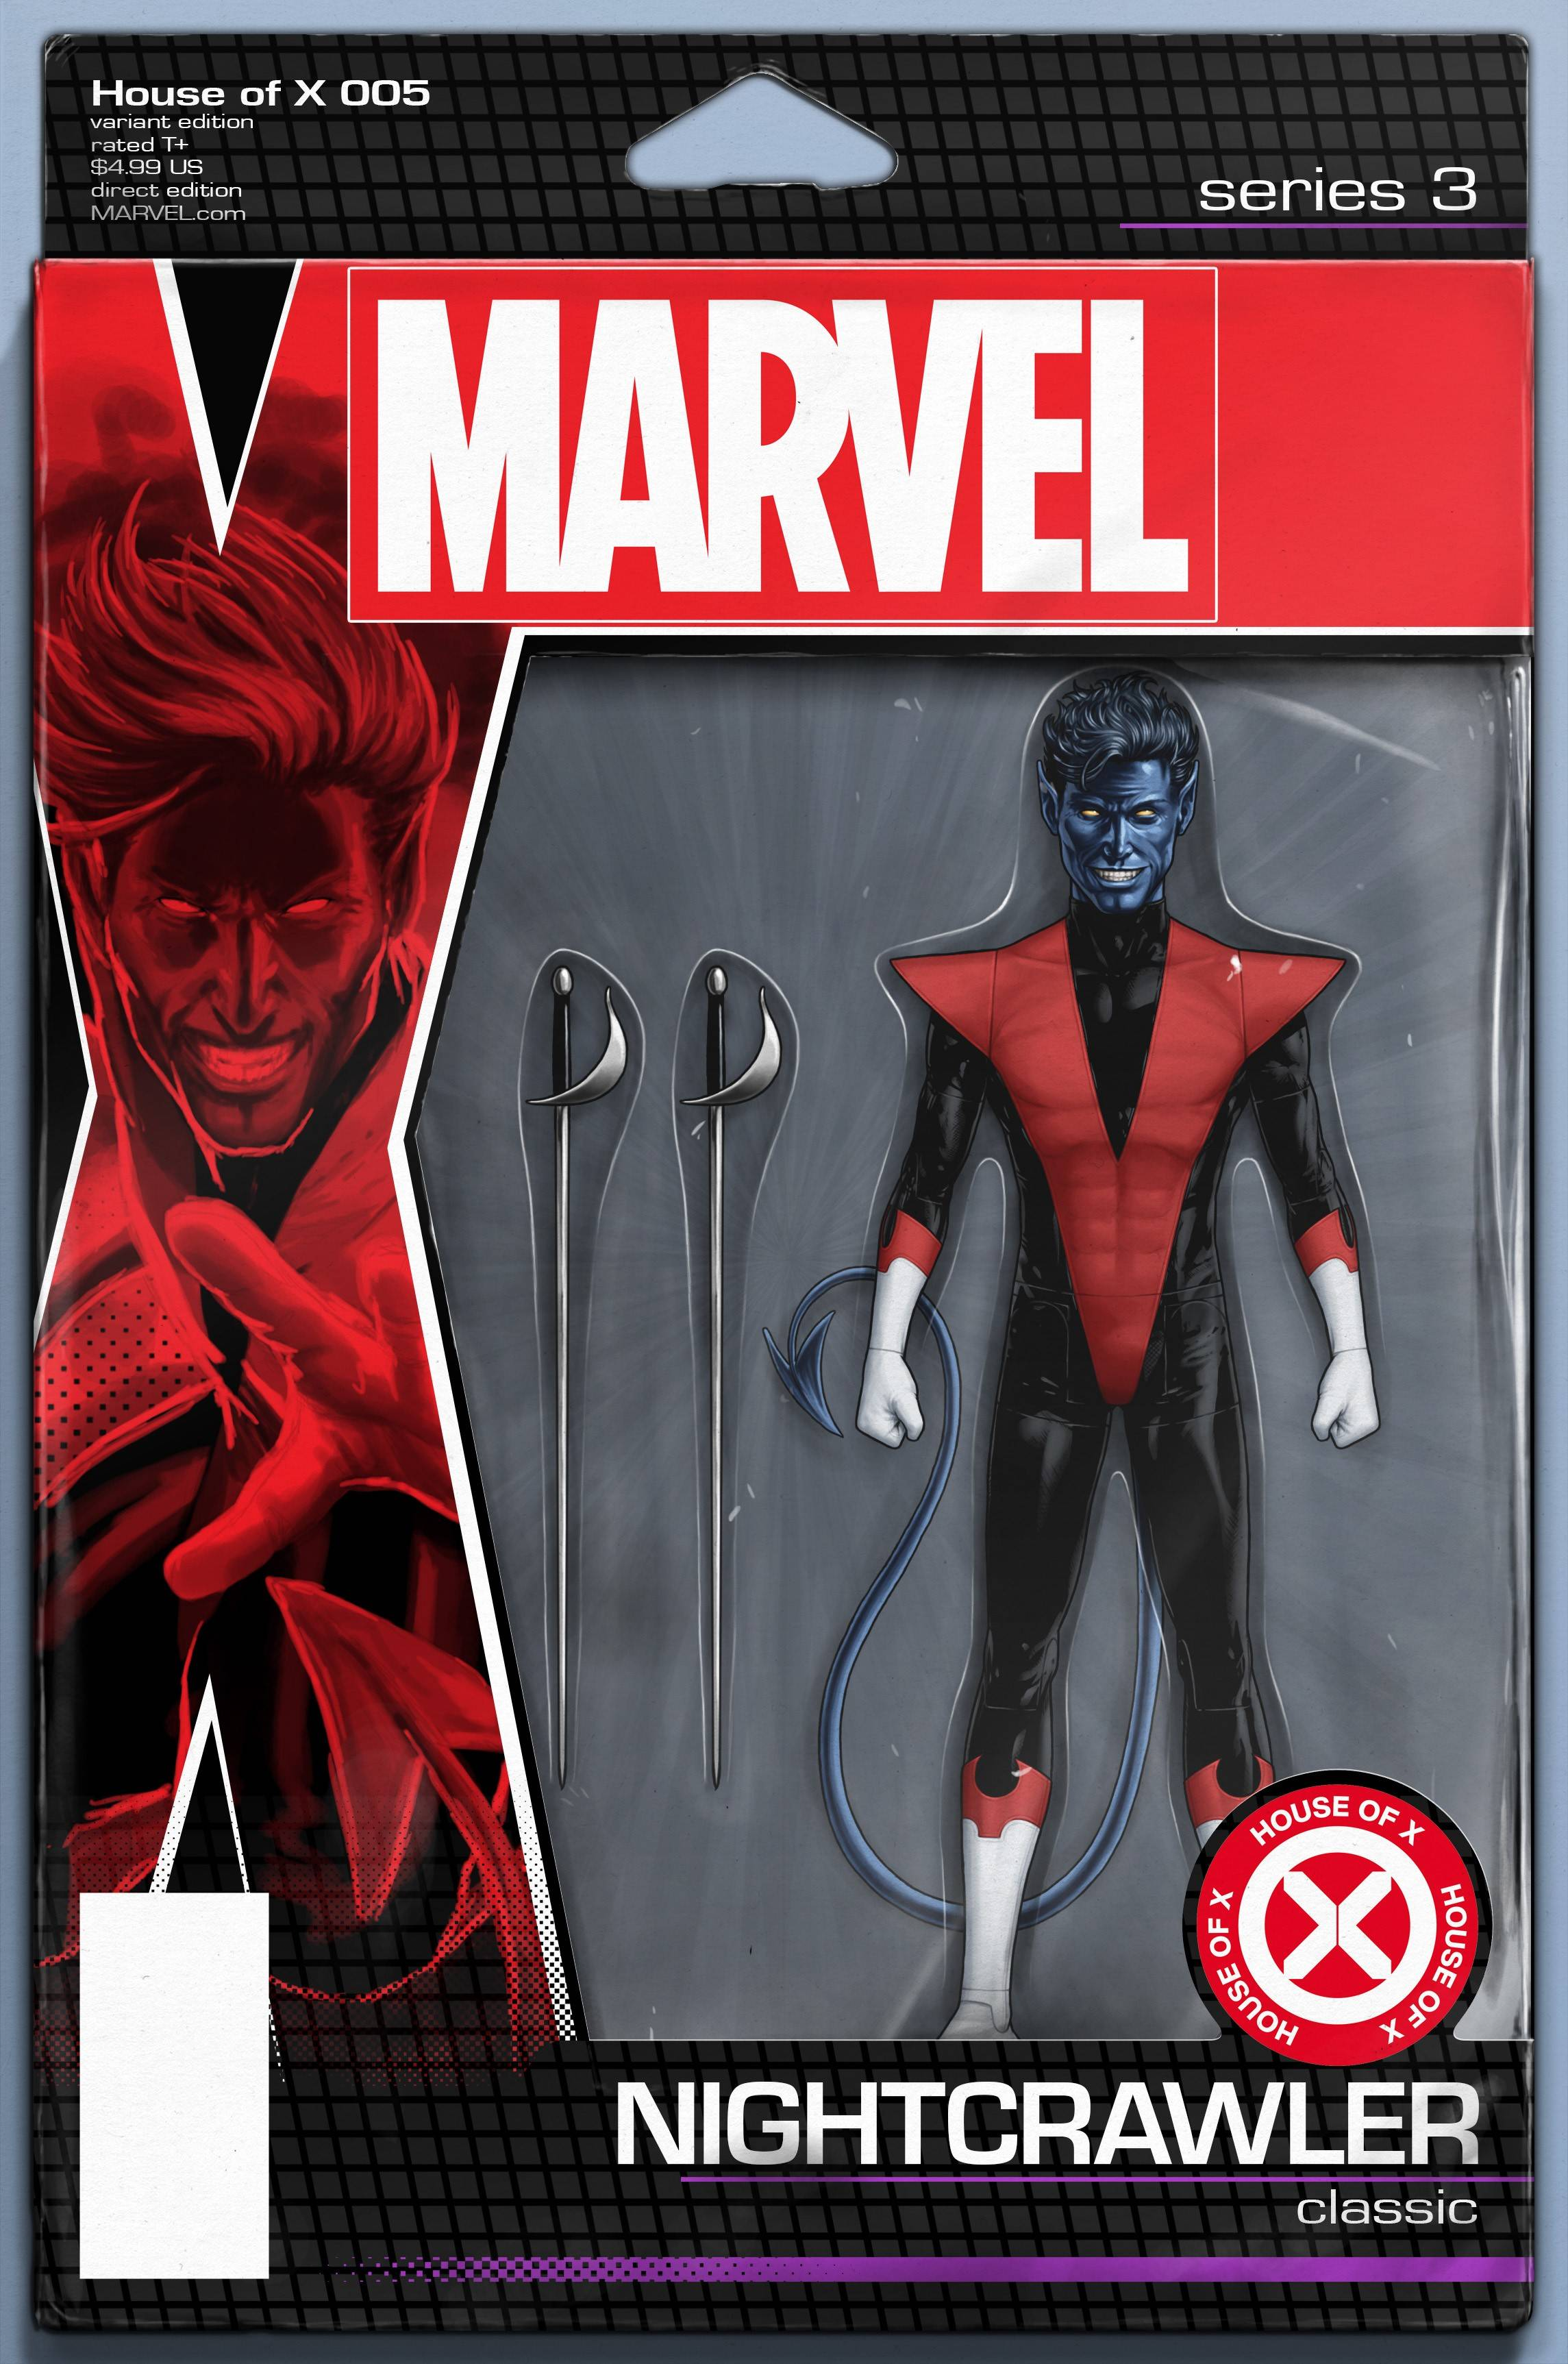 HOUSE OF X 5 of 6 CHRISTOPHER ACTION FIGURE VAR.jpg